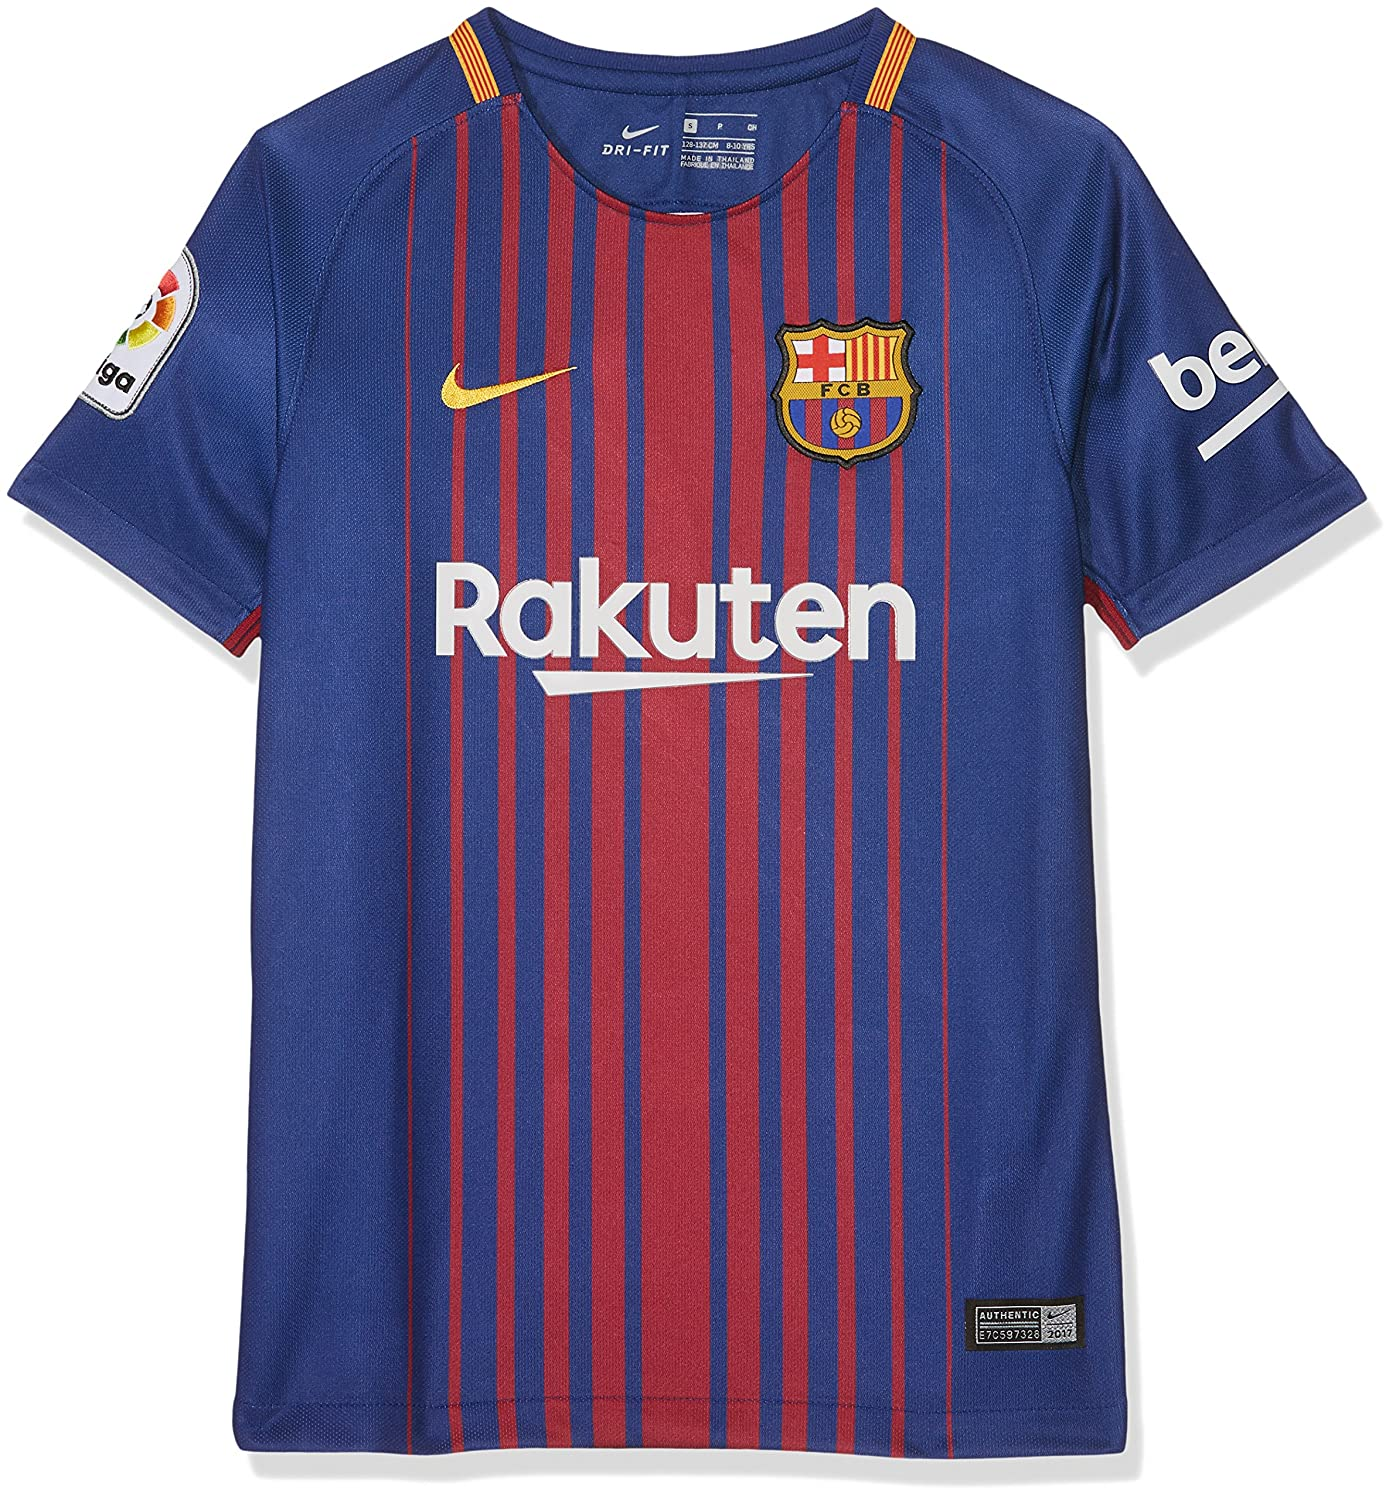 8acb6765d Amazon.com   Nike 2017 18 Kids FC Barcelona Stadium Jersey with Sponsor   DEEP Royal Blue    Sports   Outdoors